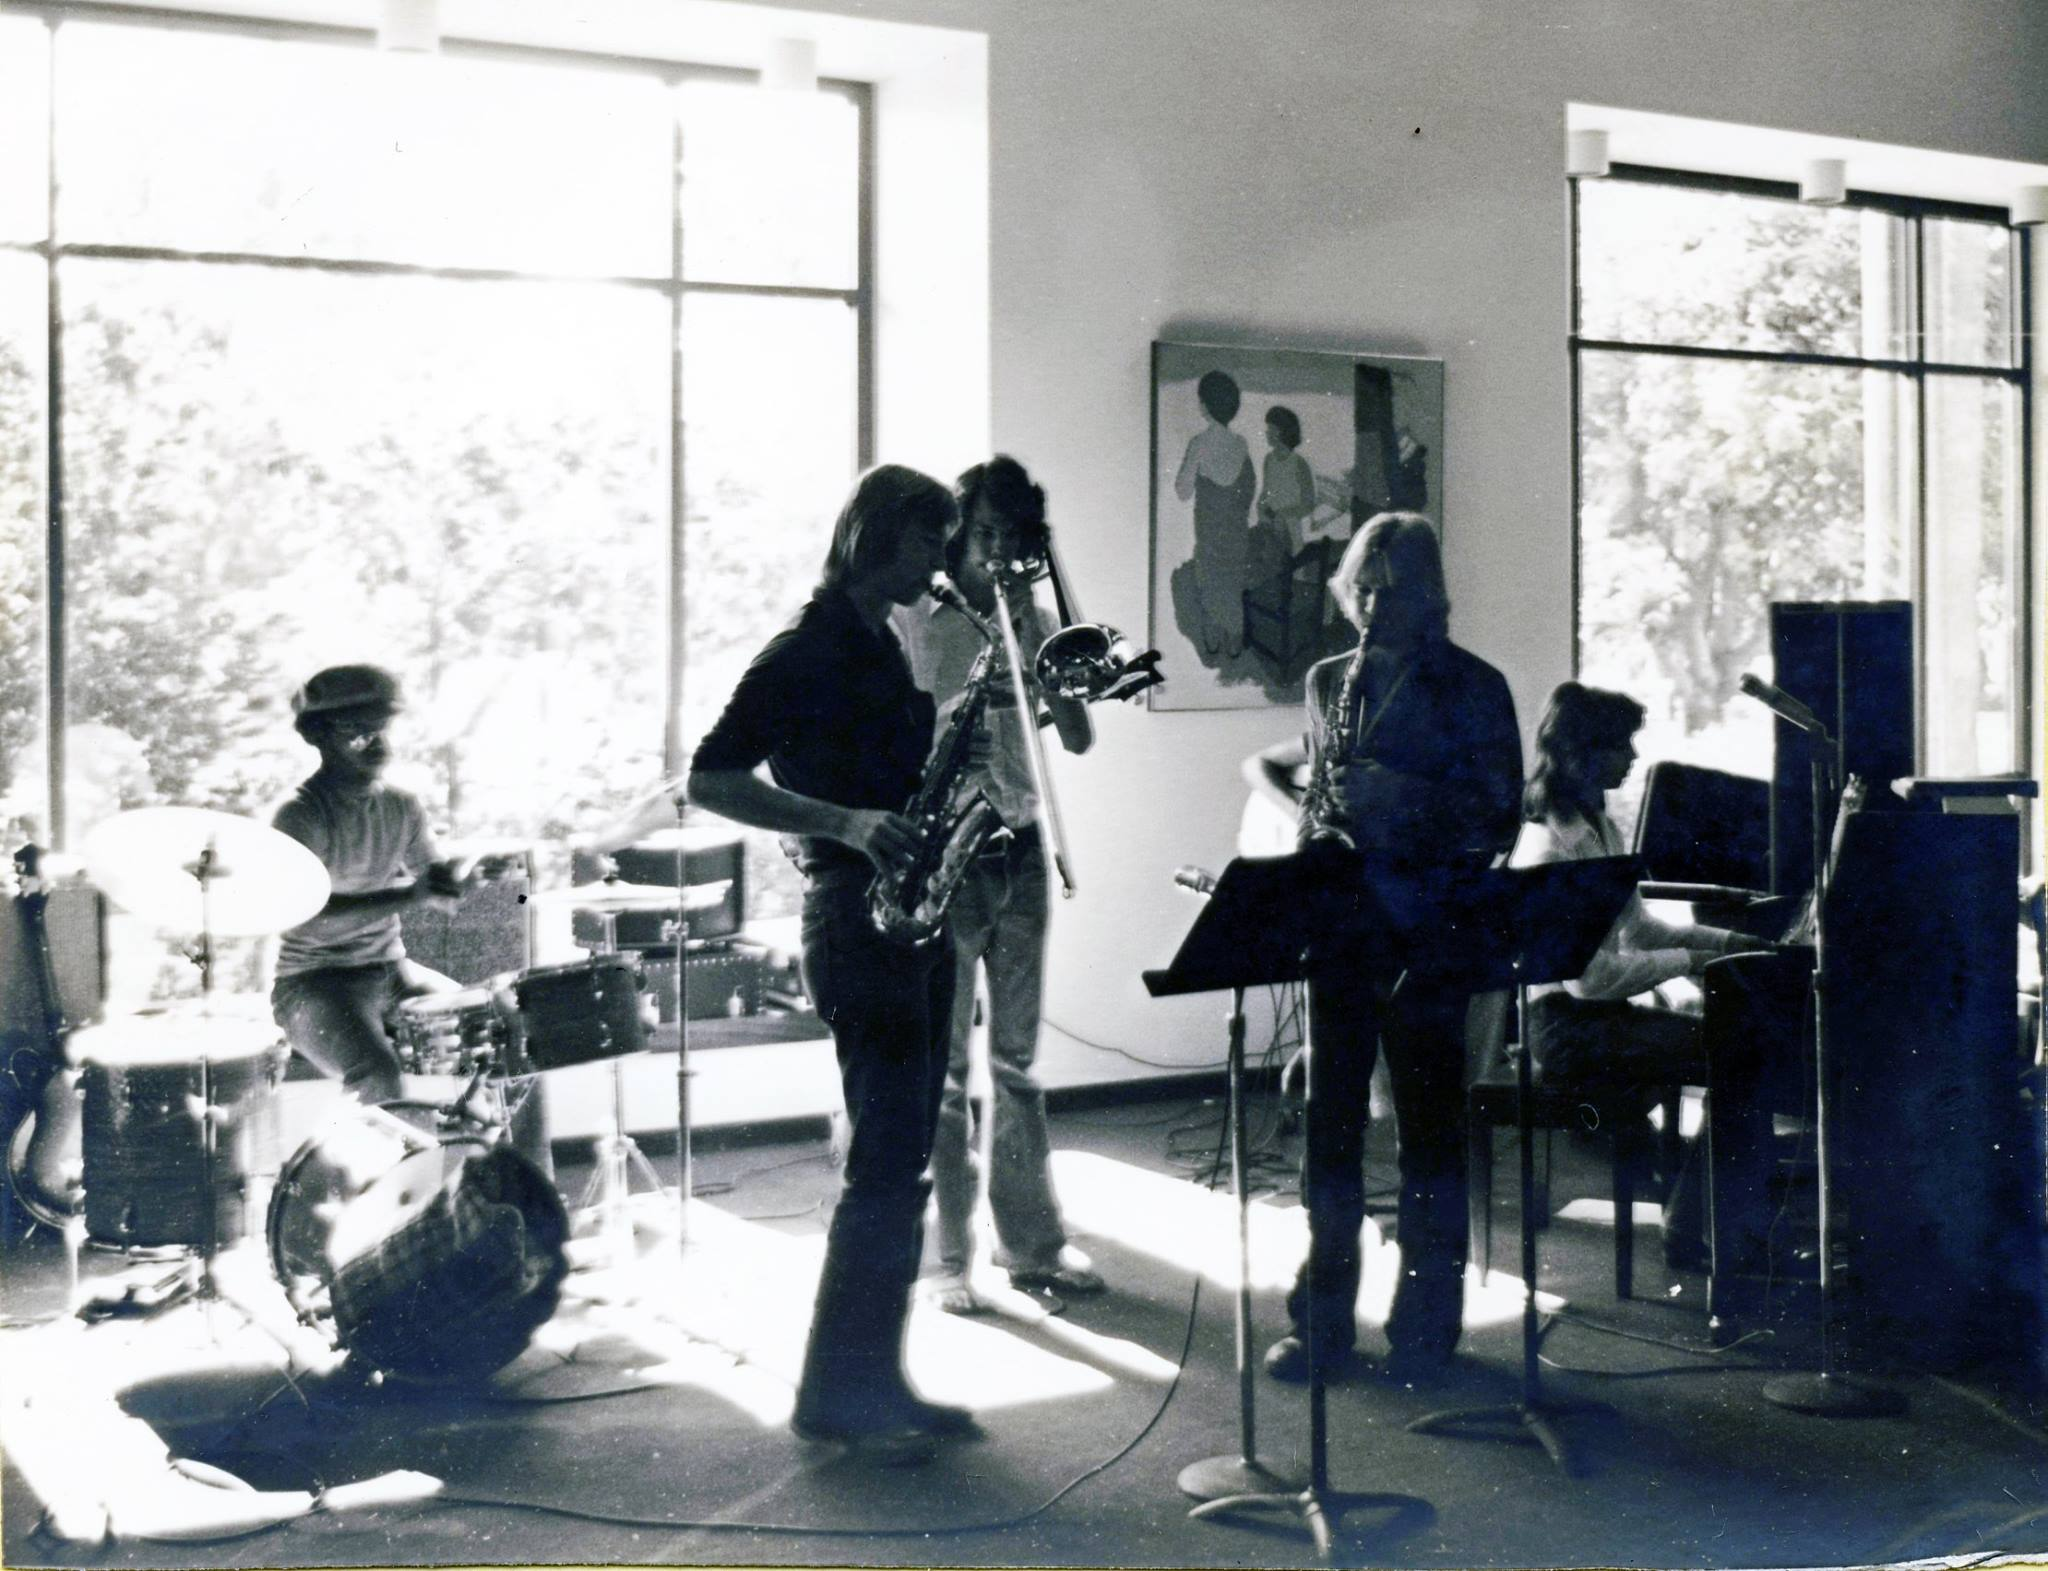 ASU Memorial Union, May 1977. L to R: Lewis Nash (drums), Dave Bennett (alto sax), John Wise (trombone), Allan Chase (alto sax), Dan Siemens (guitar), Brad Buxer (piano). Not in picture: Scott Reed (bass).